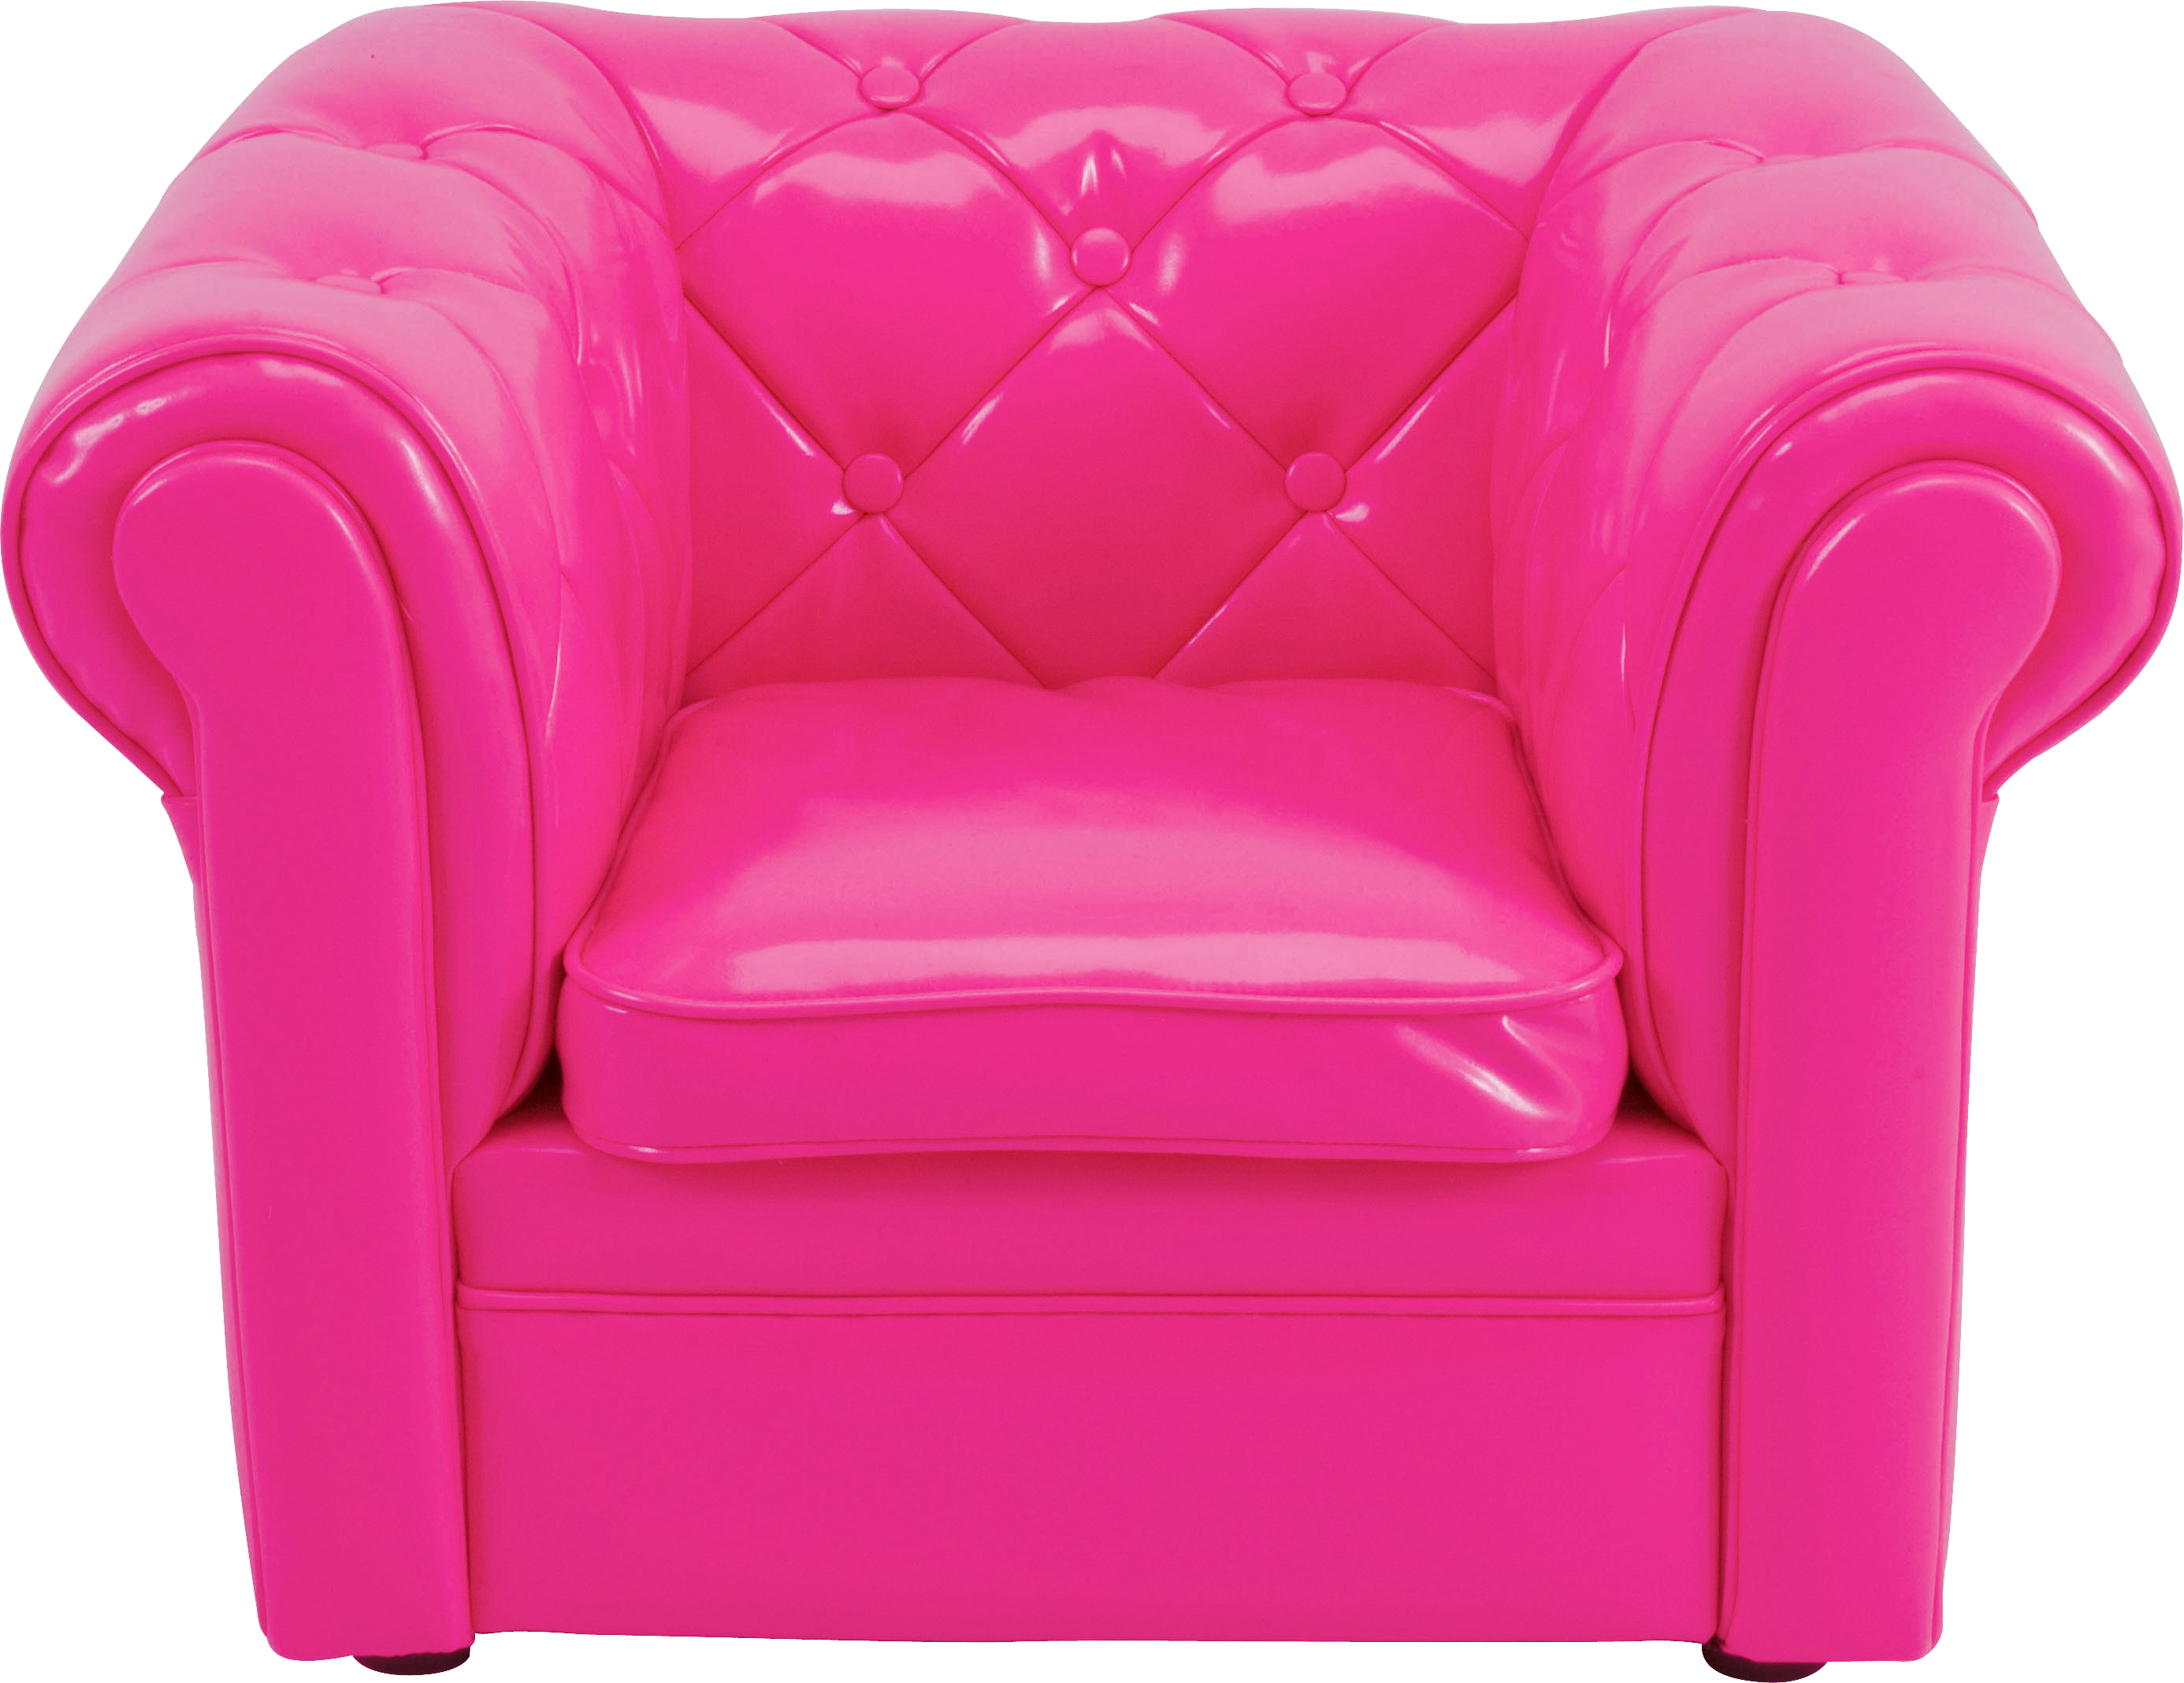 Armchair png images free. Furniture clipart arm chair